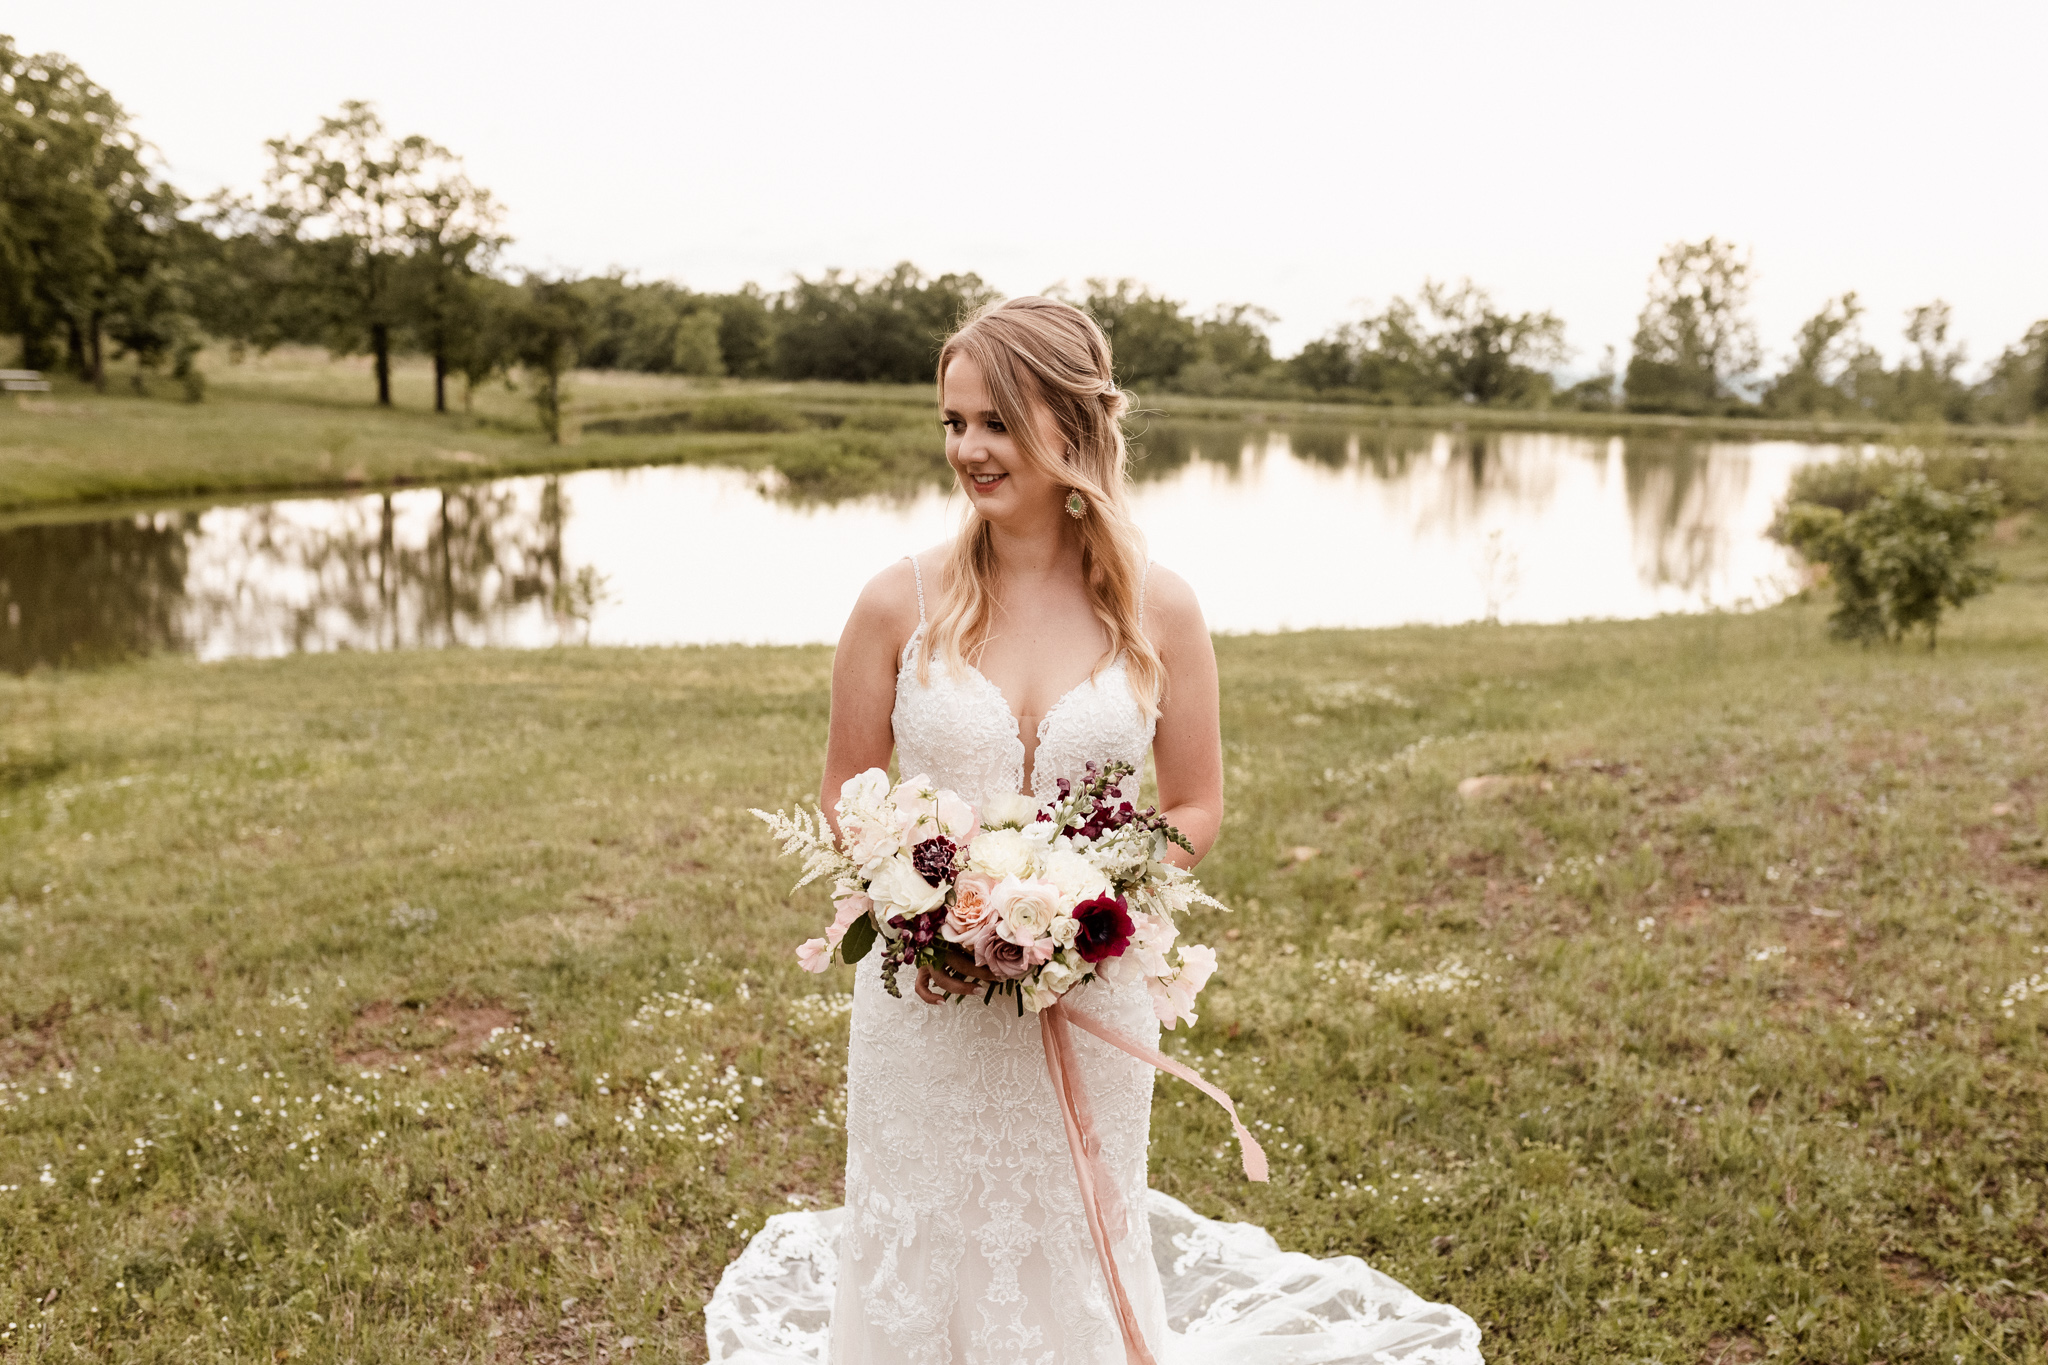 Brittany | Romantic Outdoor Bridals | Oklahoma Wedding Photographer-18.jpg